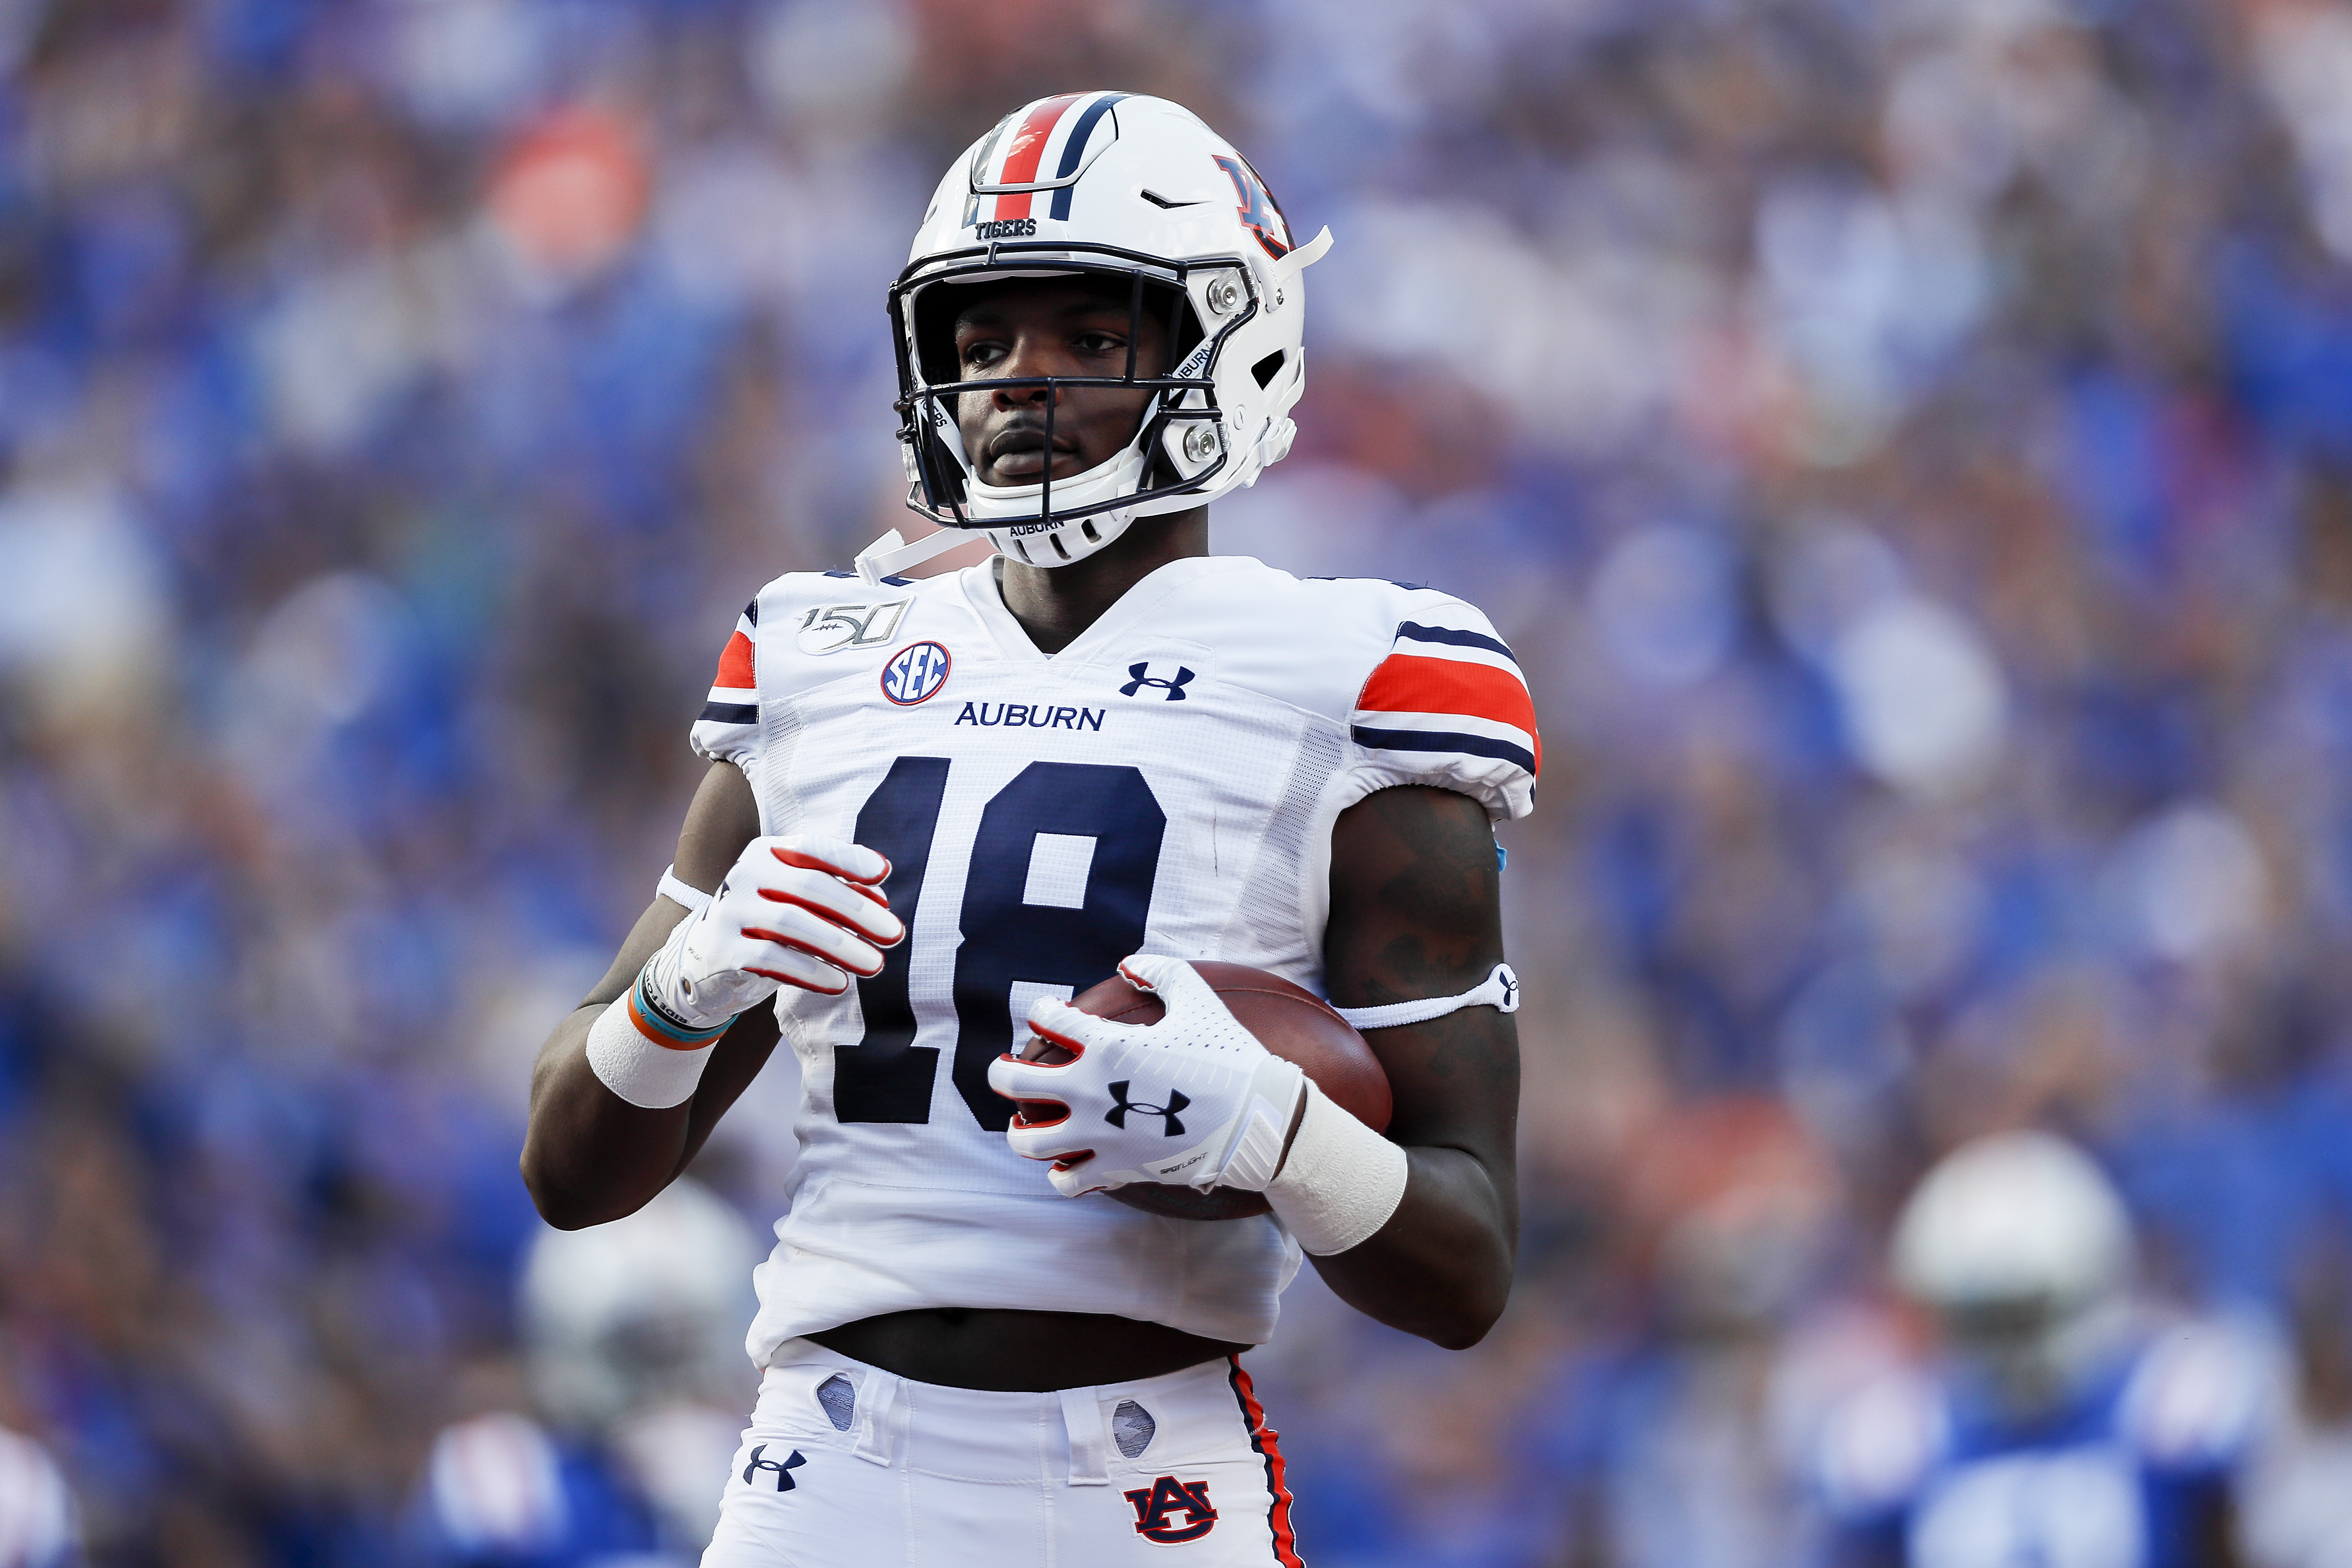 Seth Williams #18 of the Auburn Tigers scores a touchdown during the second quarter of a game against the Florida Gators at Ben Hill Griffin Stadium on October 05, 2019 in Gainesville, Florida.